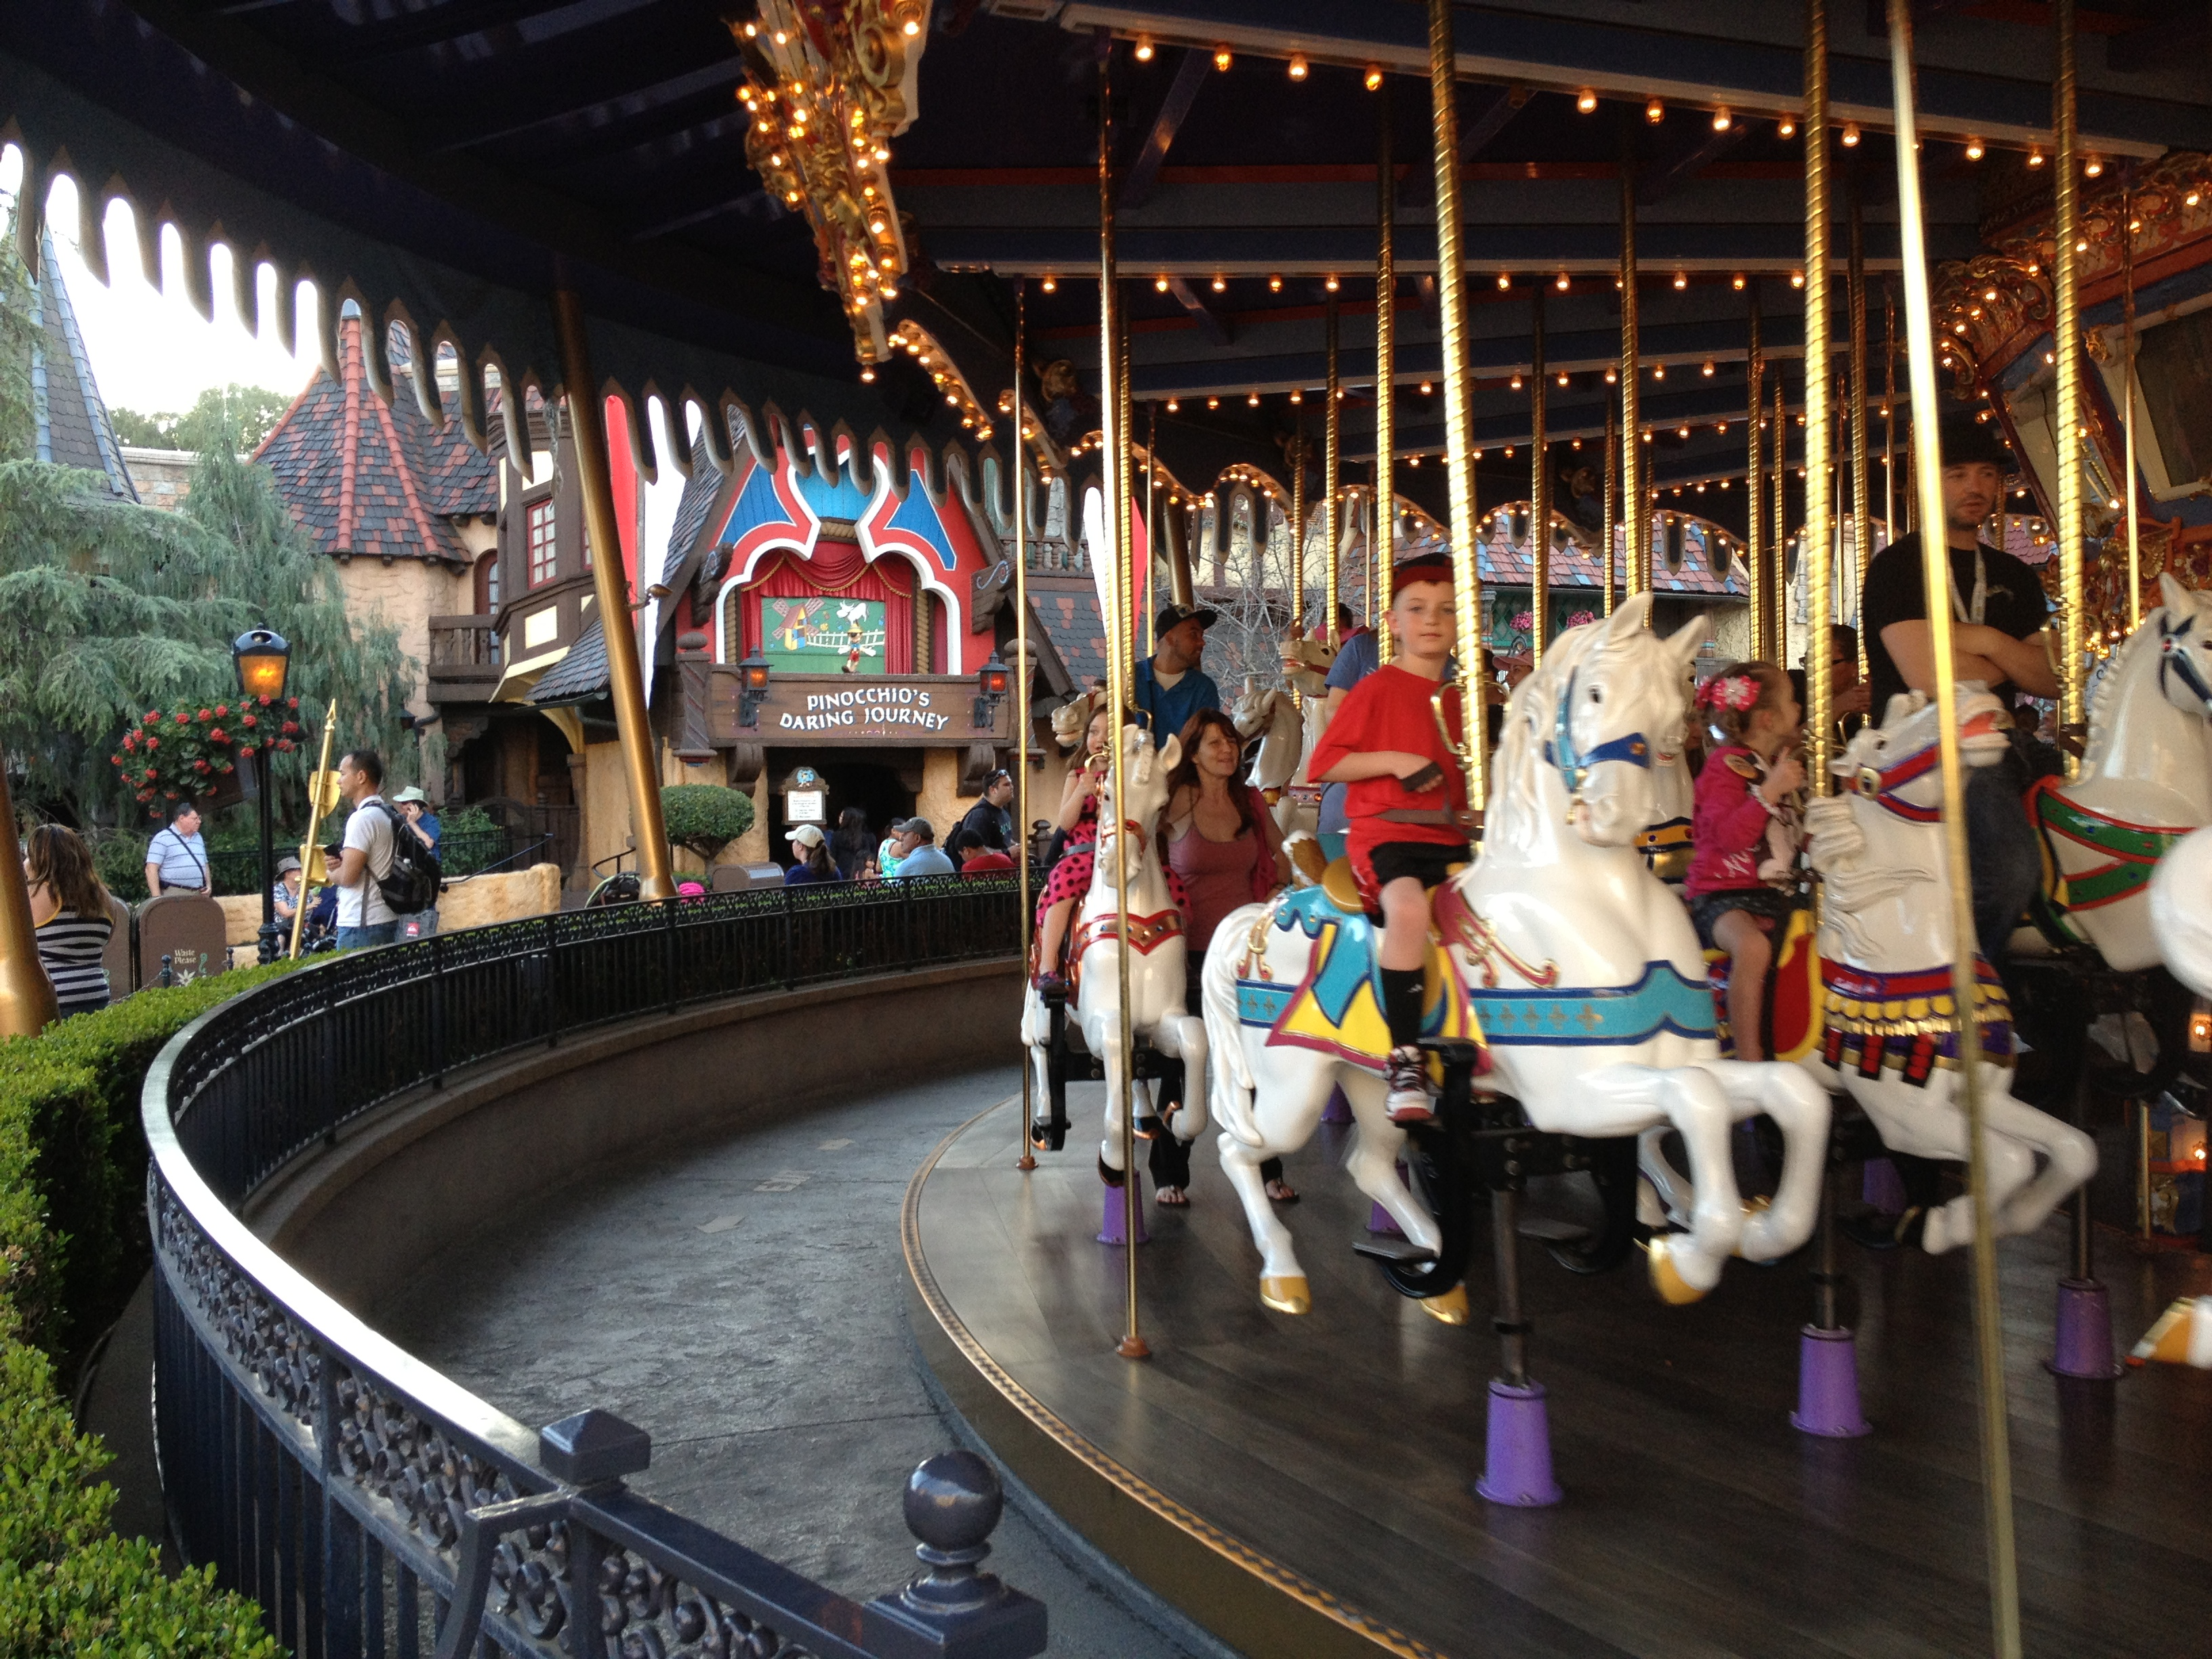 Maximize your Ride Time at Disneyland